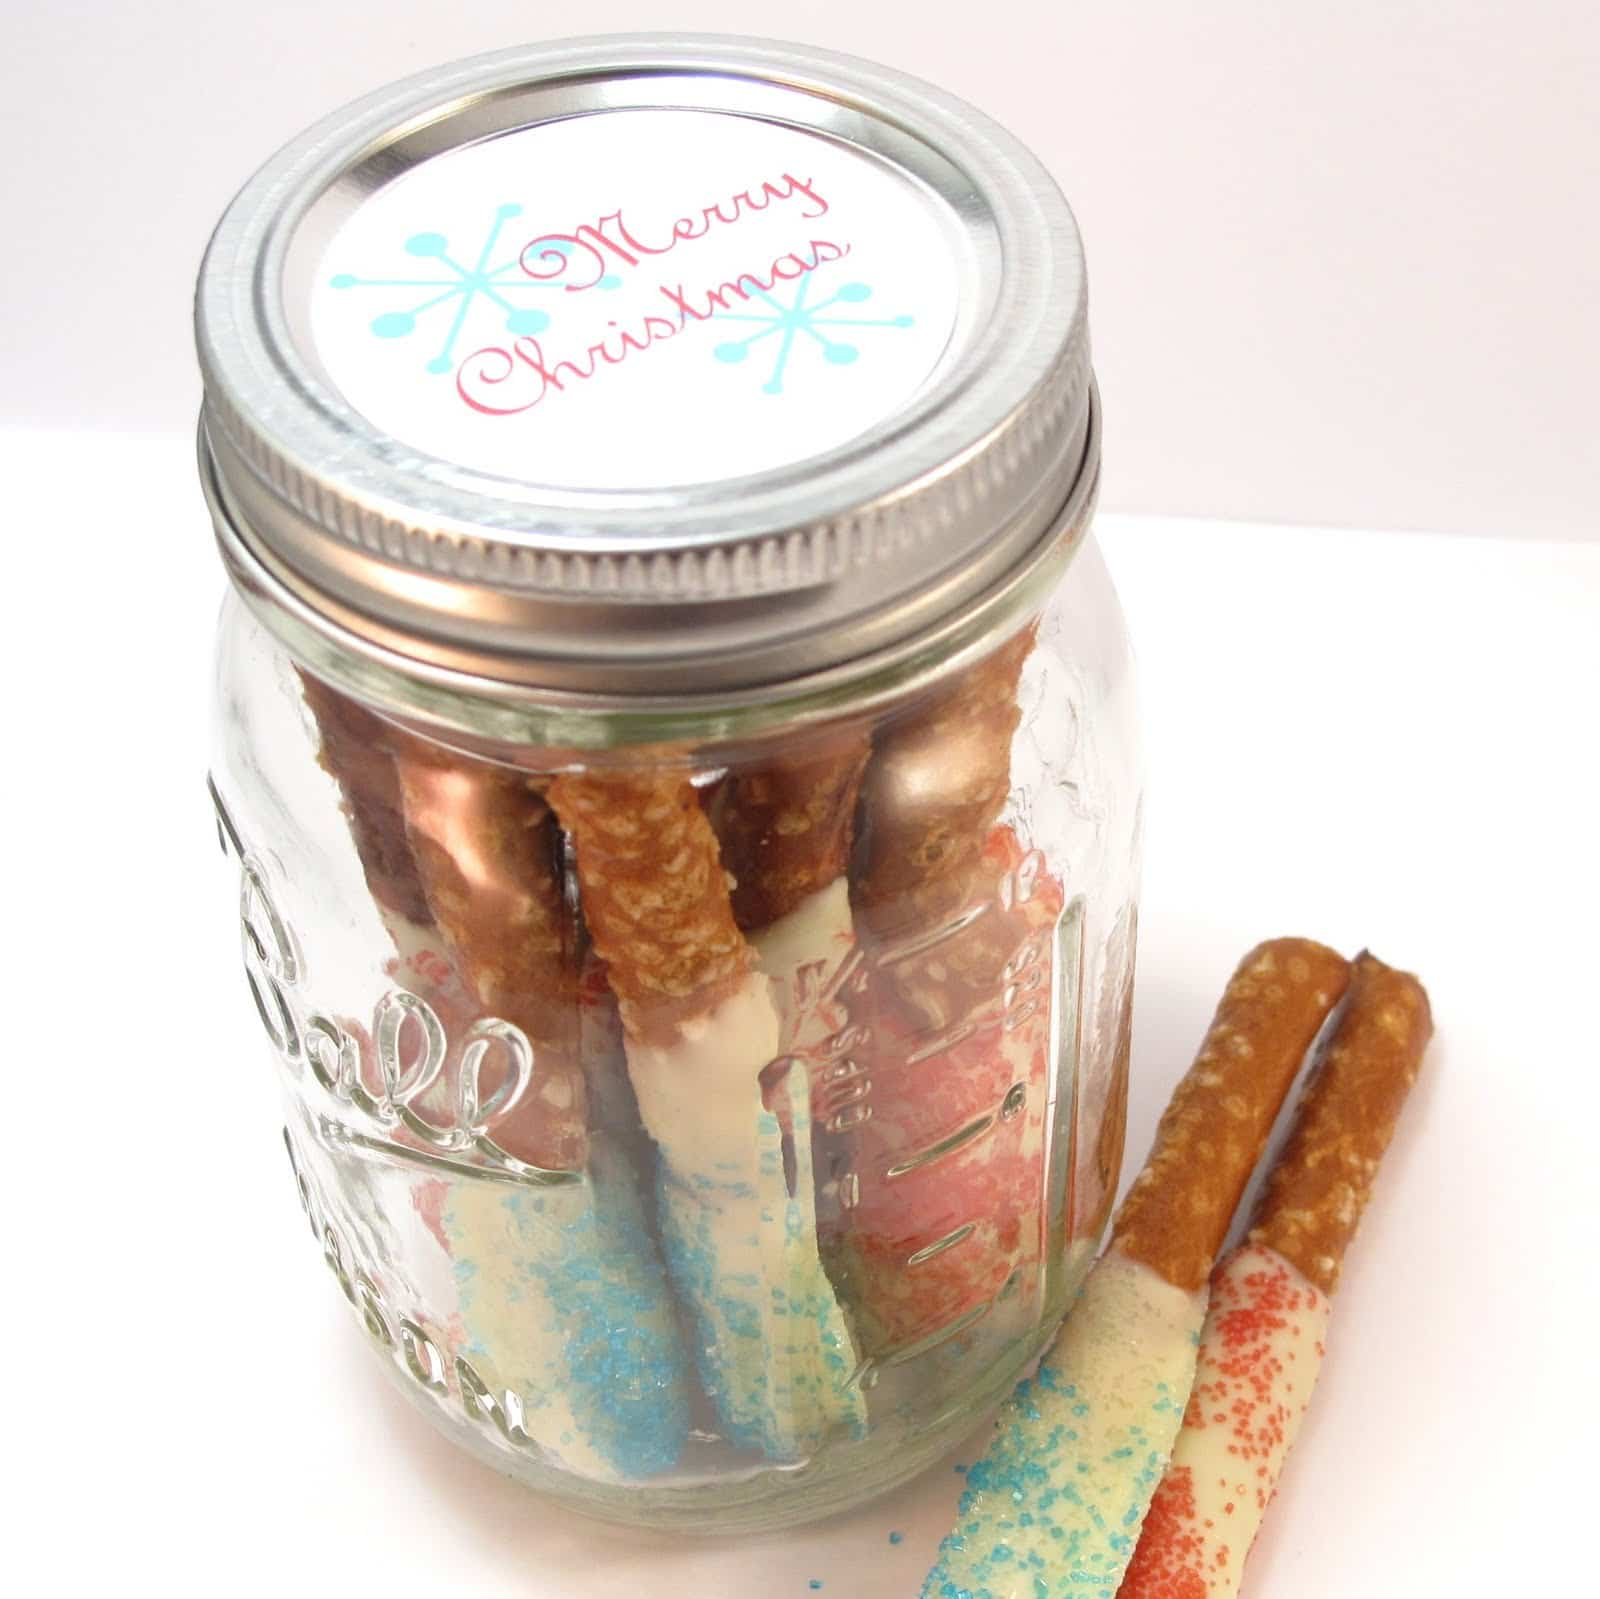 30 Mason Jar Gift Ideas for a Perfectly Country Christmas. Give the holidays a rustic flair with these sweet-as-pie presents.